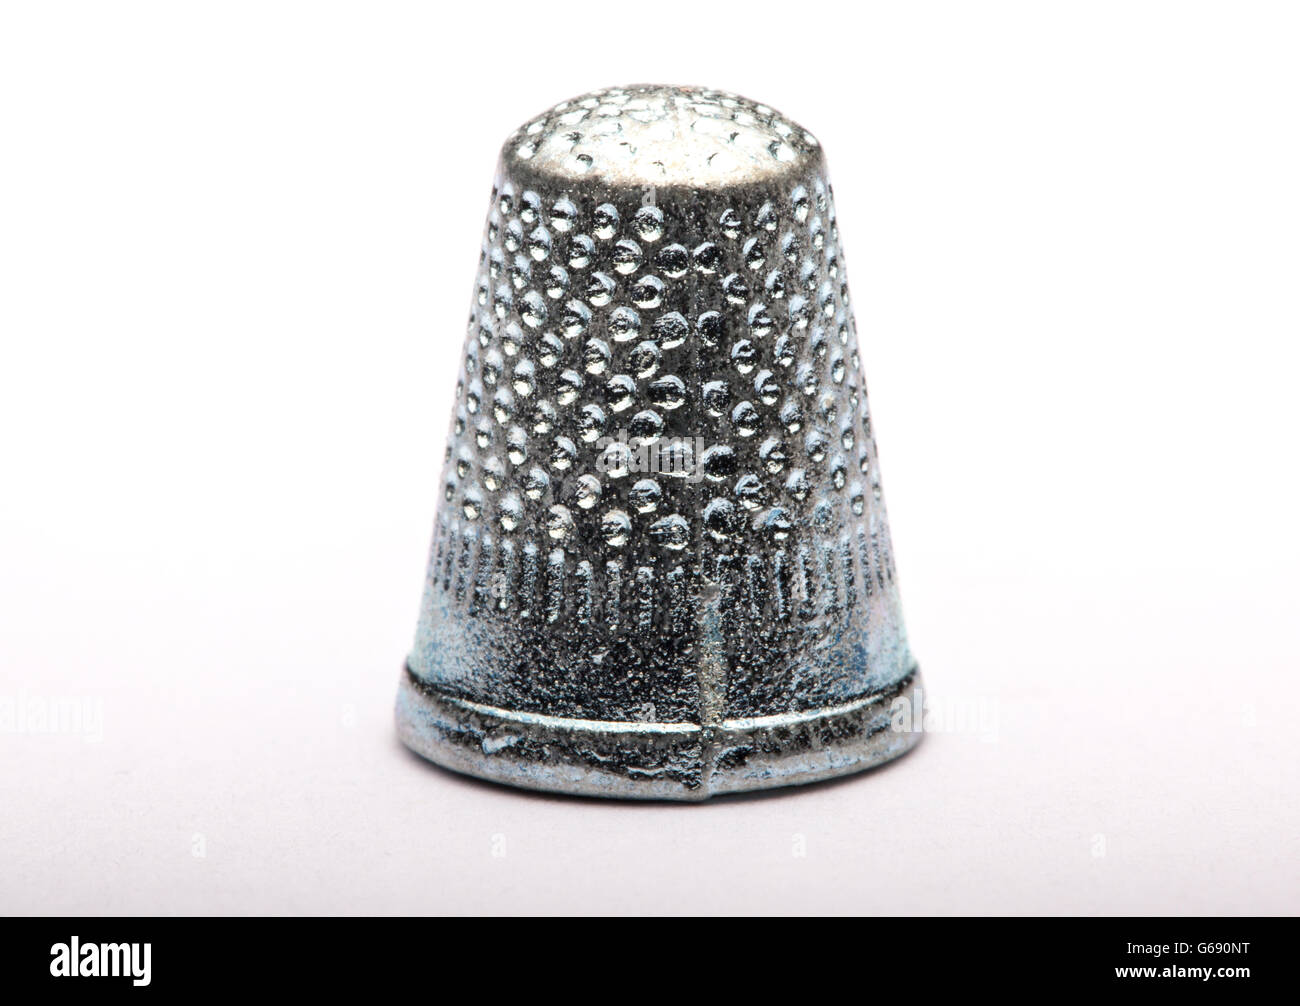 monopoly thimble piece against a white background - Stock Image